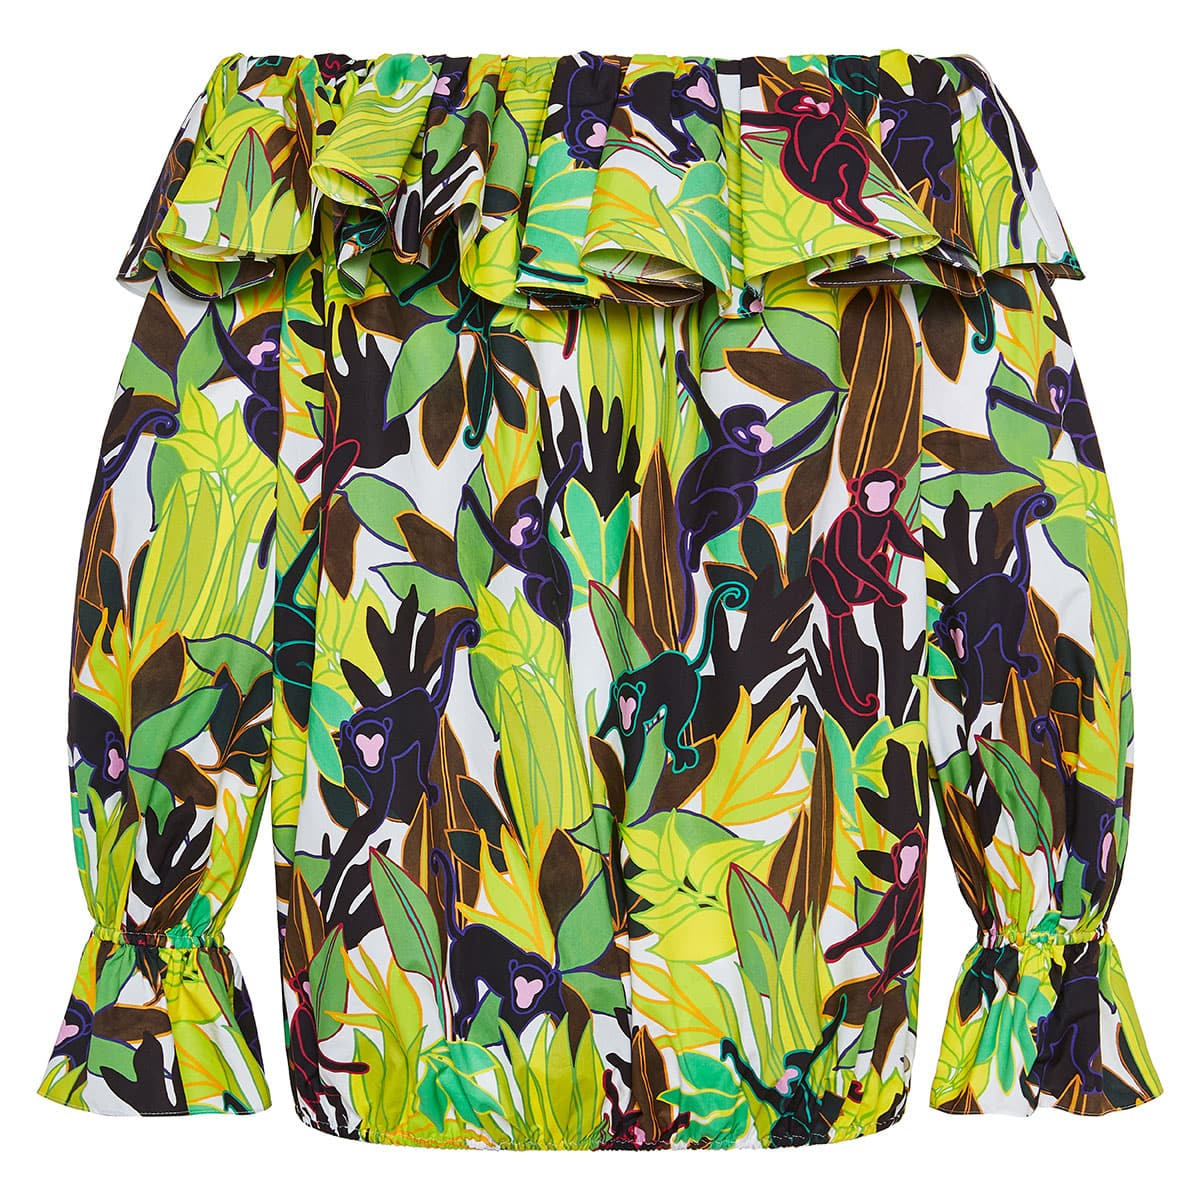 Panther in the Jungle off-the-shoulder blouse